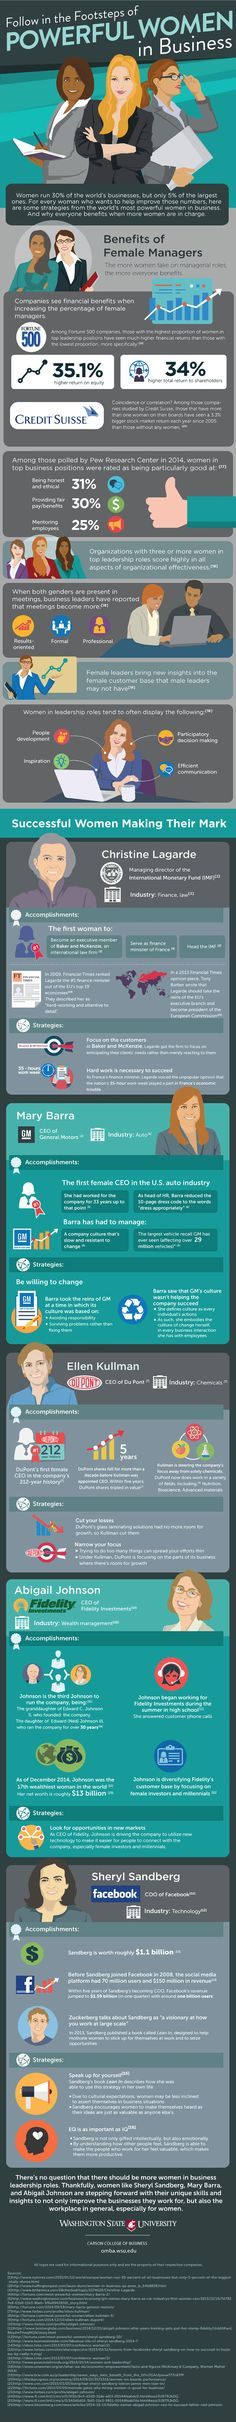 Follow in the Footsteps of Powerful Women in Business. What are the benefits of female managers? #infographic #Business #Women